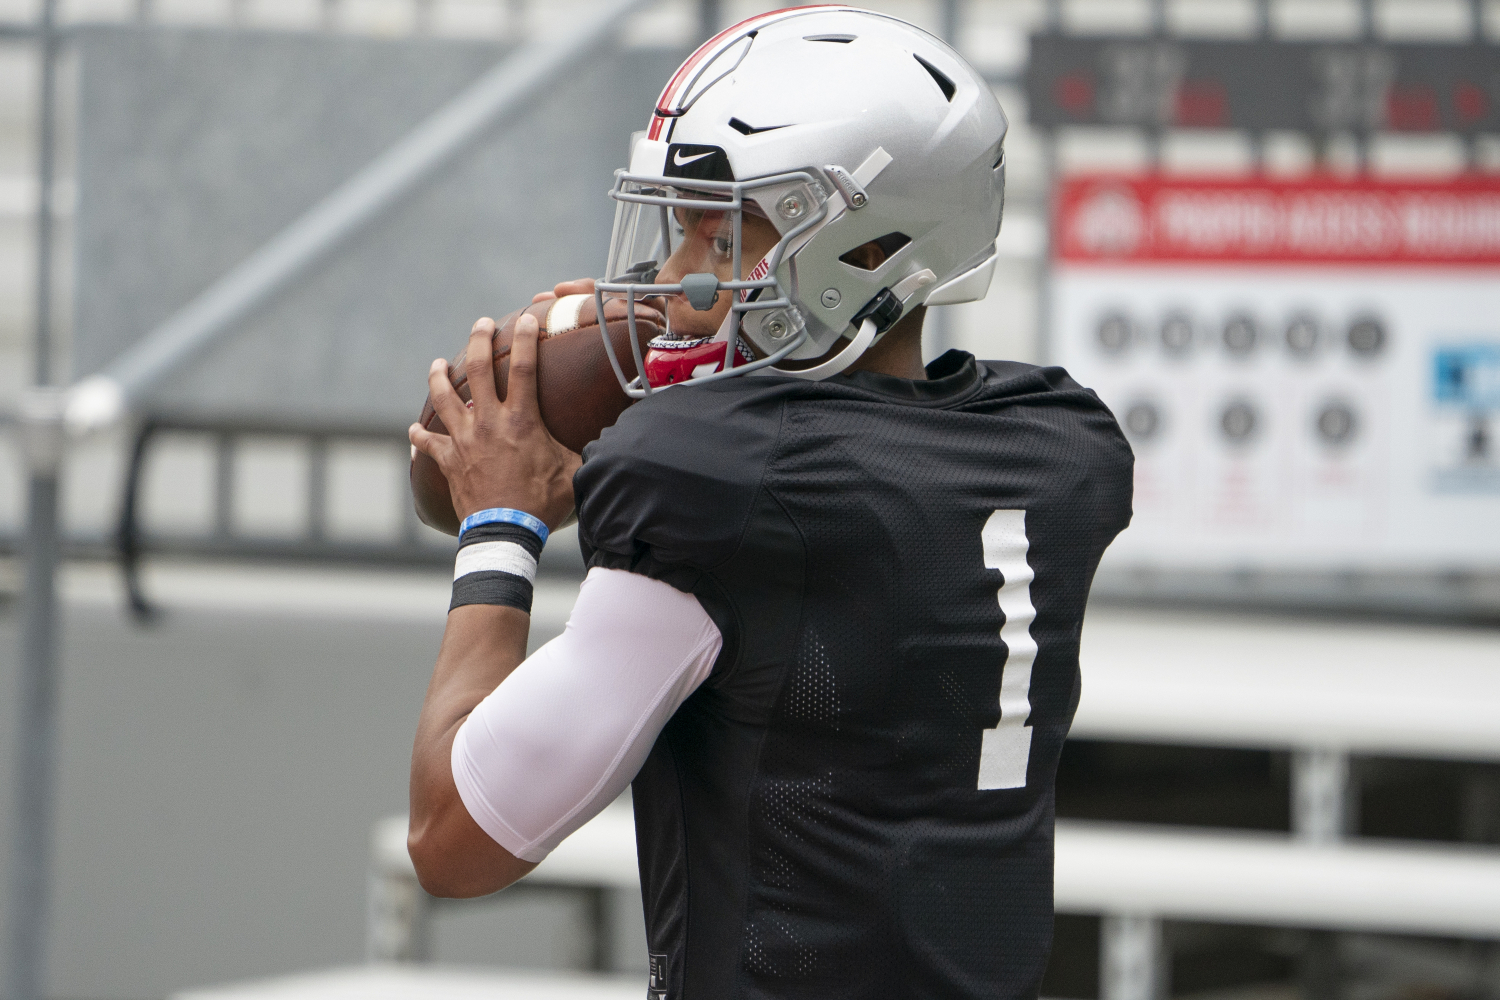 Urban Meyer isn't Ohio State's coach anymore, but he is still connected to the program. He just sent a strong message about Justin Fields.